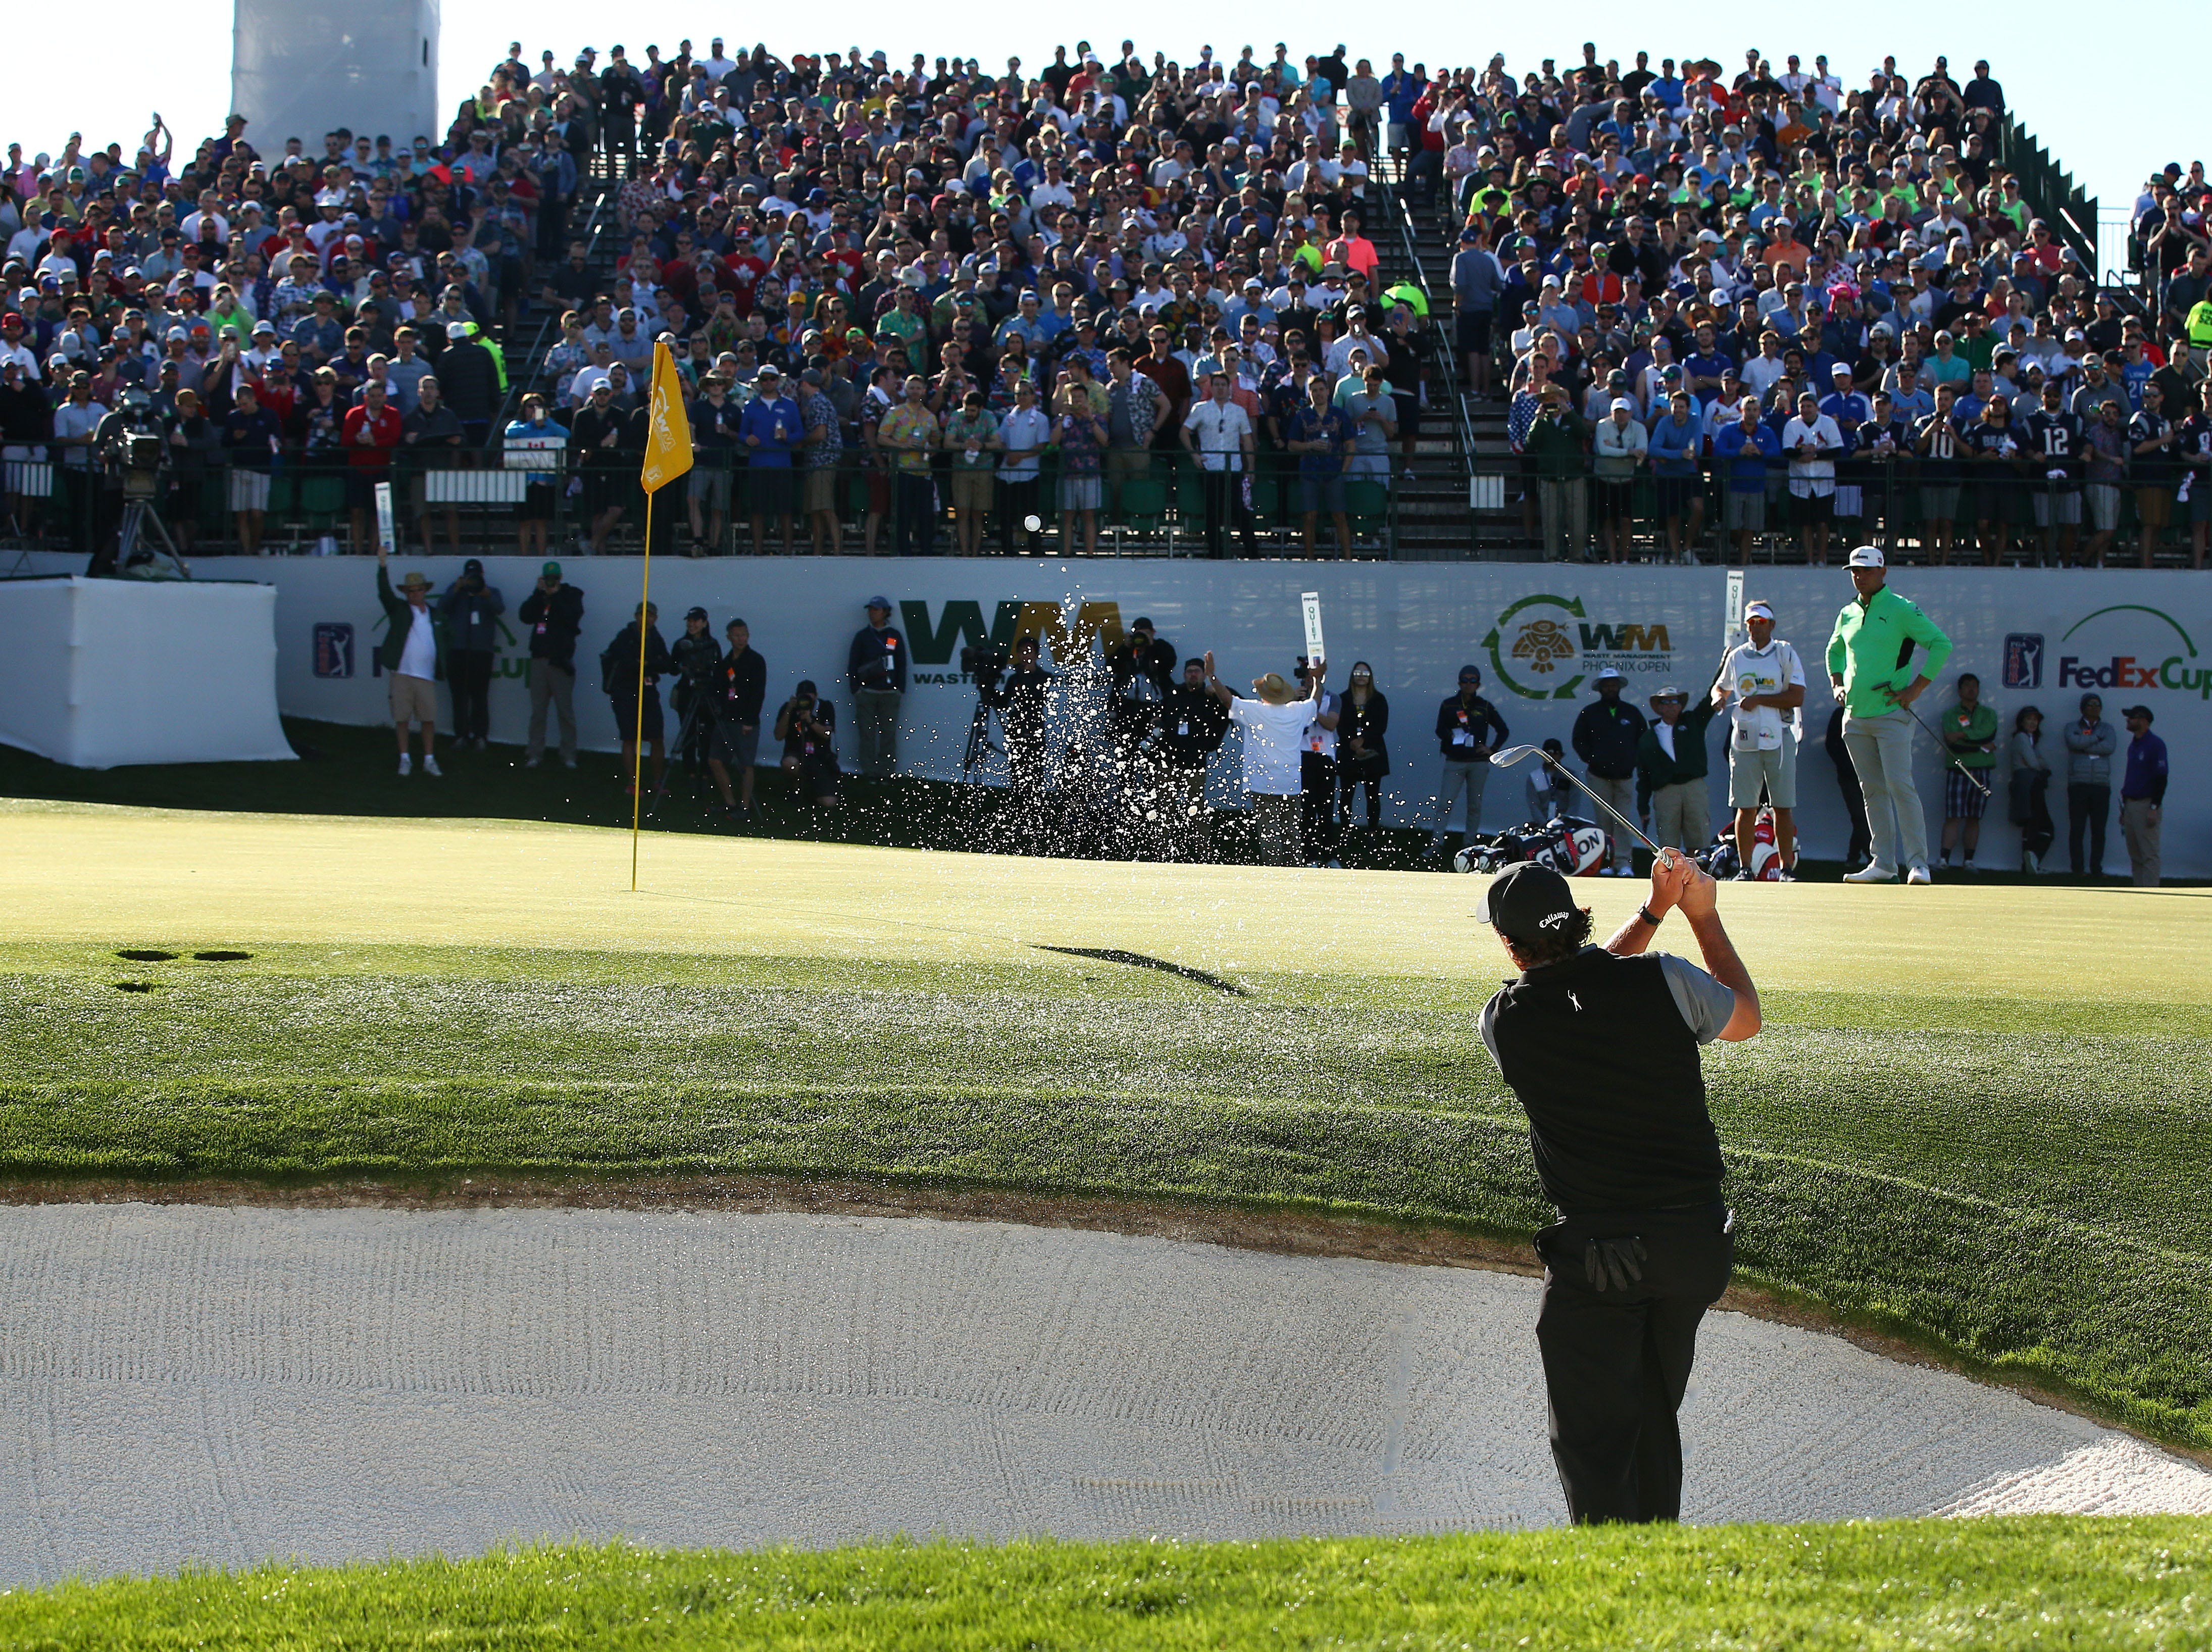 Phil Mickelson plays his third shot from the bunker on the 16th hole during second round action on Feb. 1 during the Waste Management Phoenix Open at the TPC Scottsdale Stadium Course.